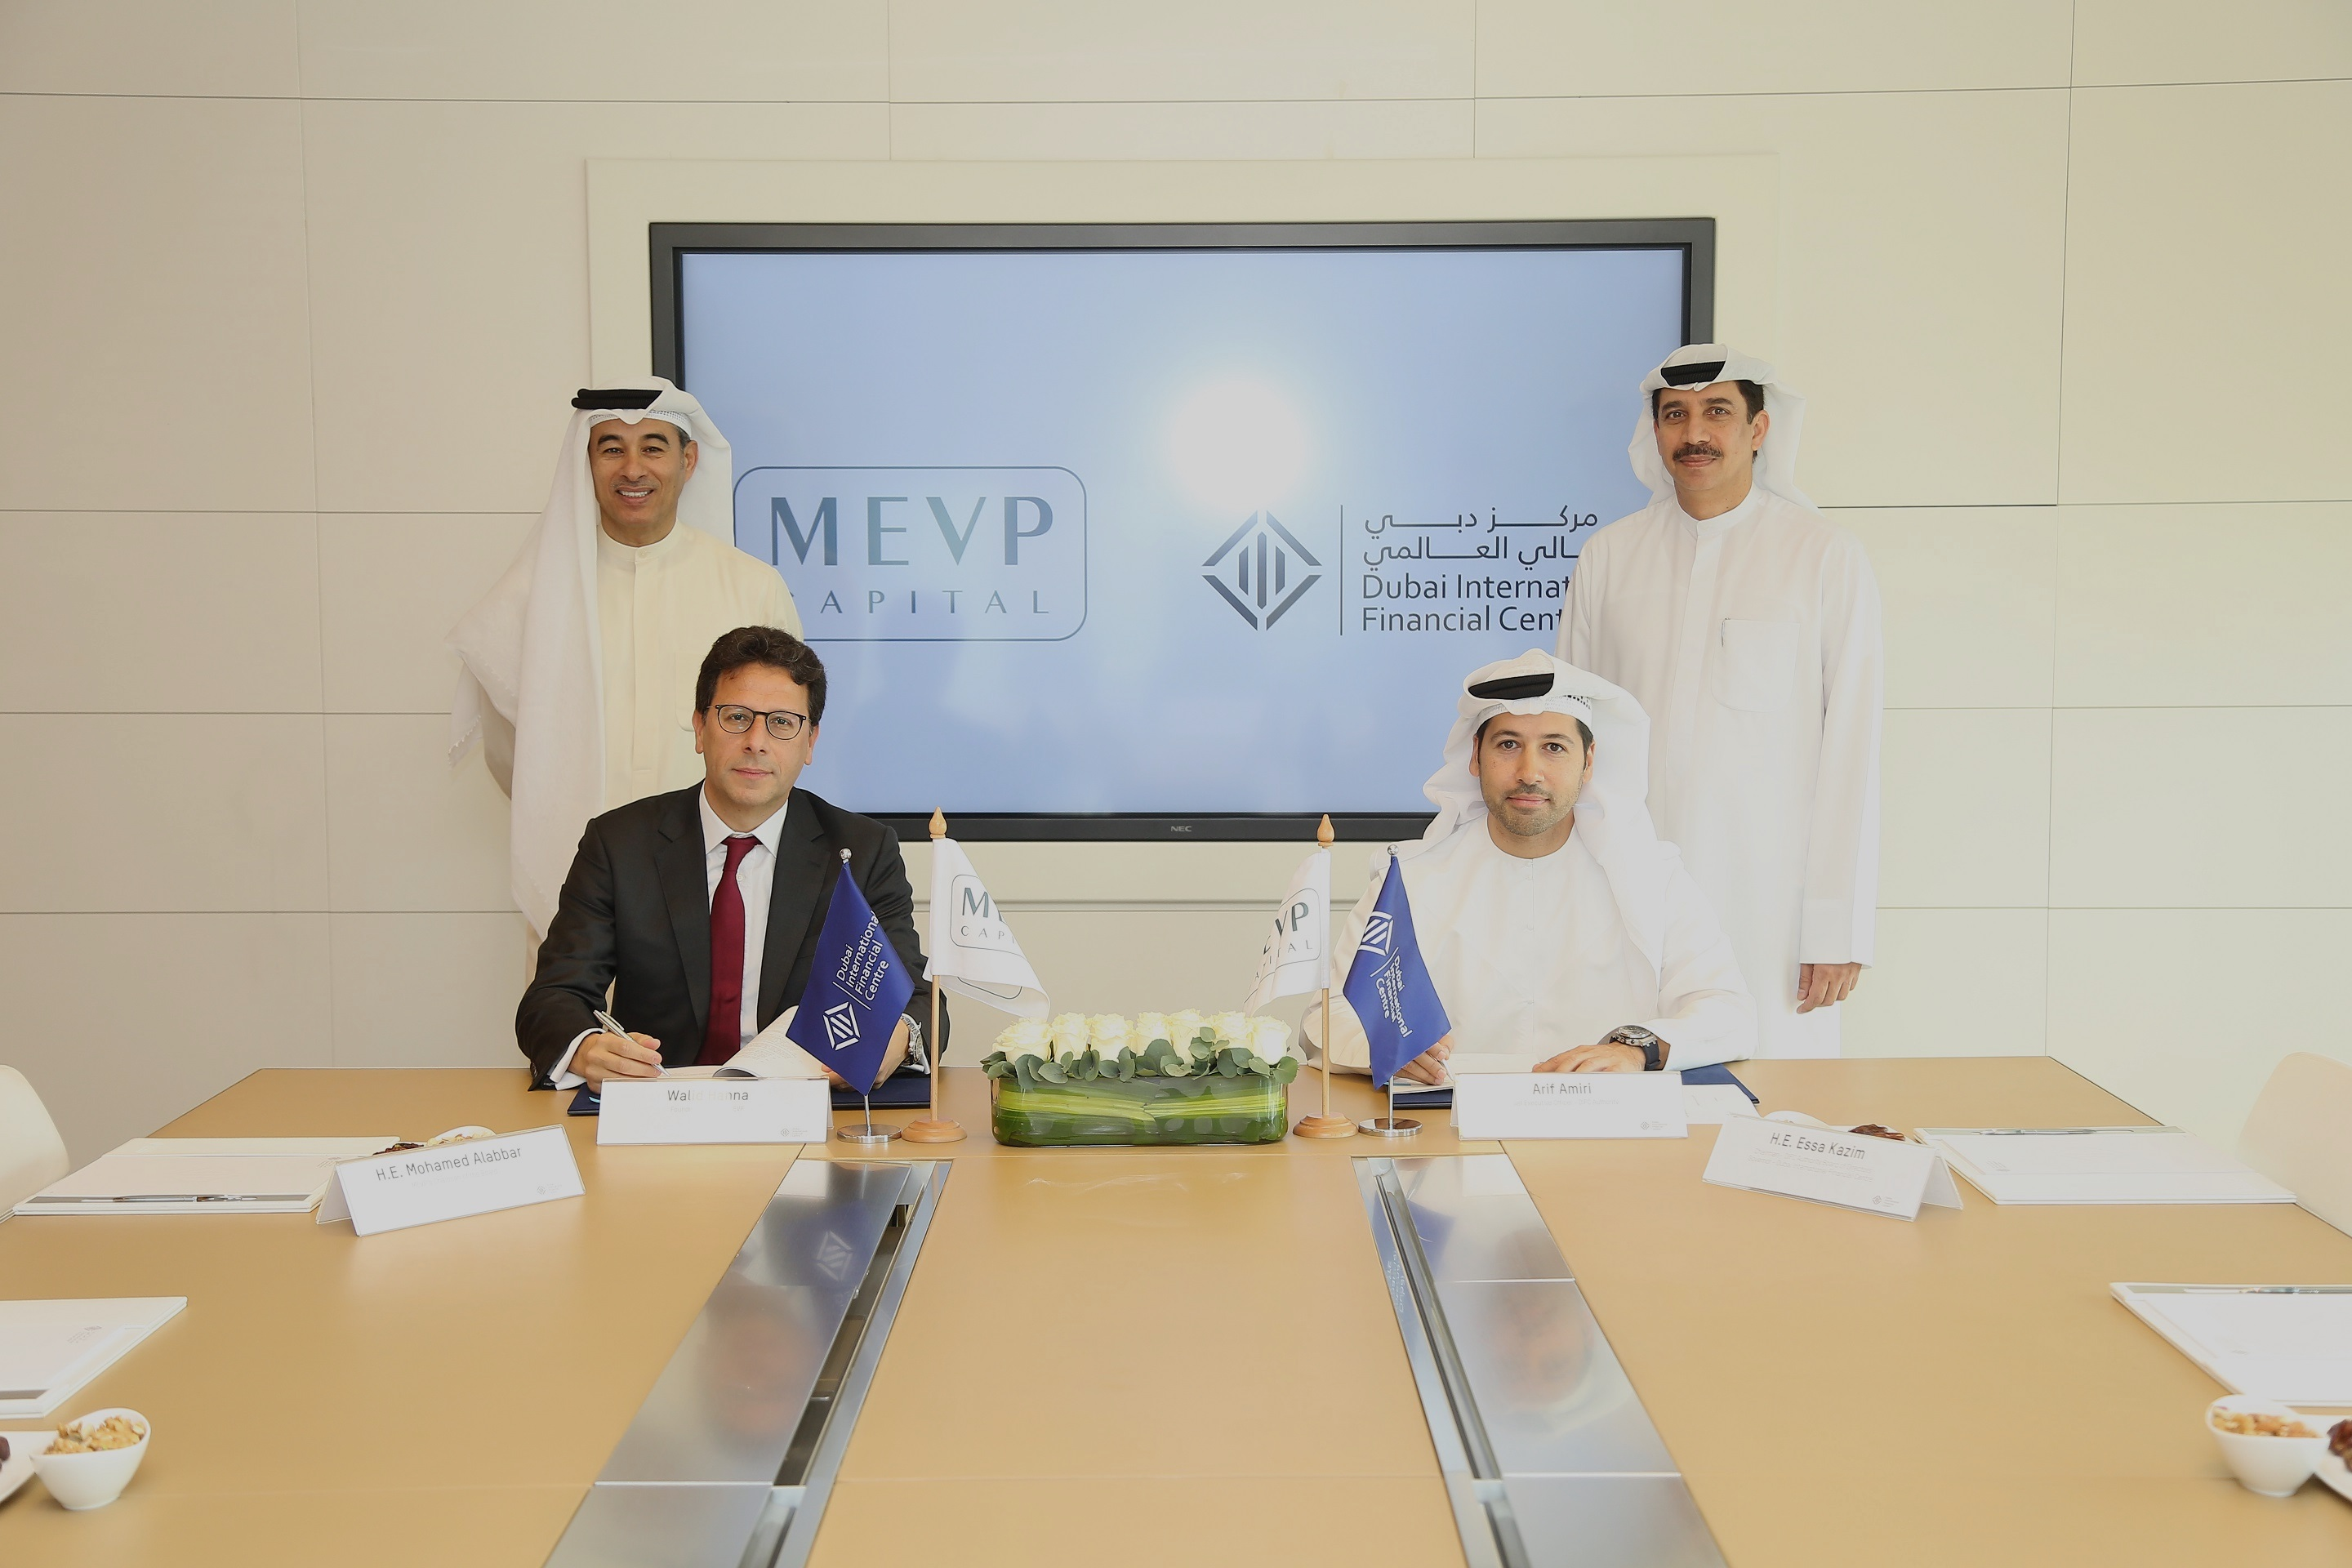 Dubai International Financial Center enters a new partnership with MEVP